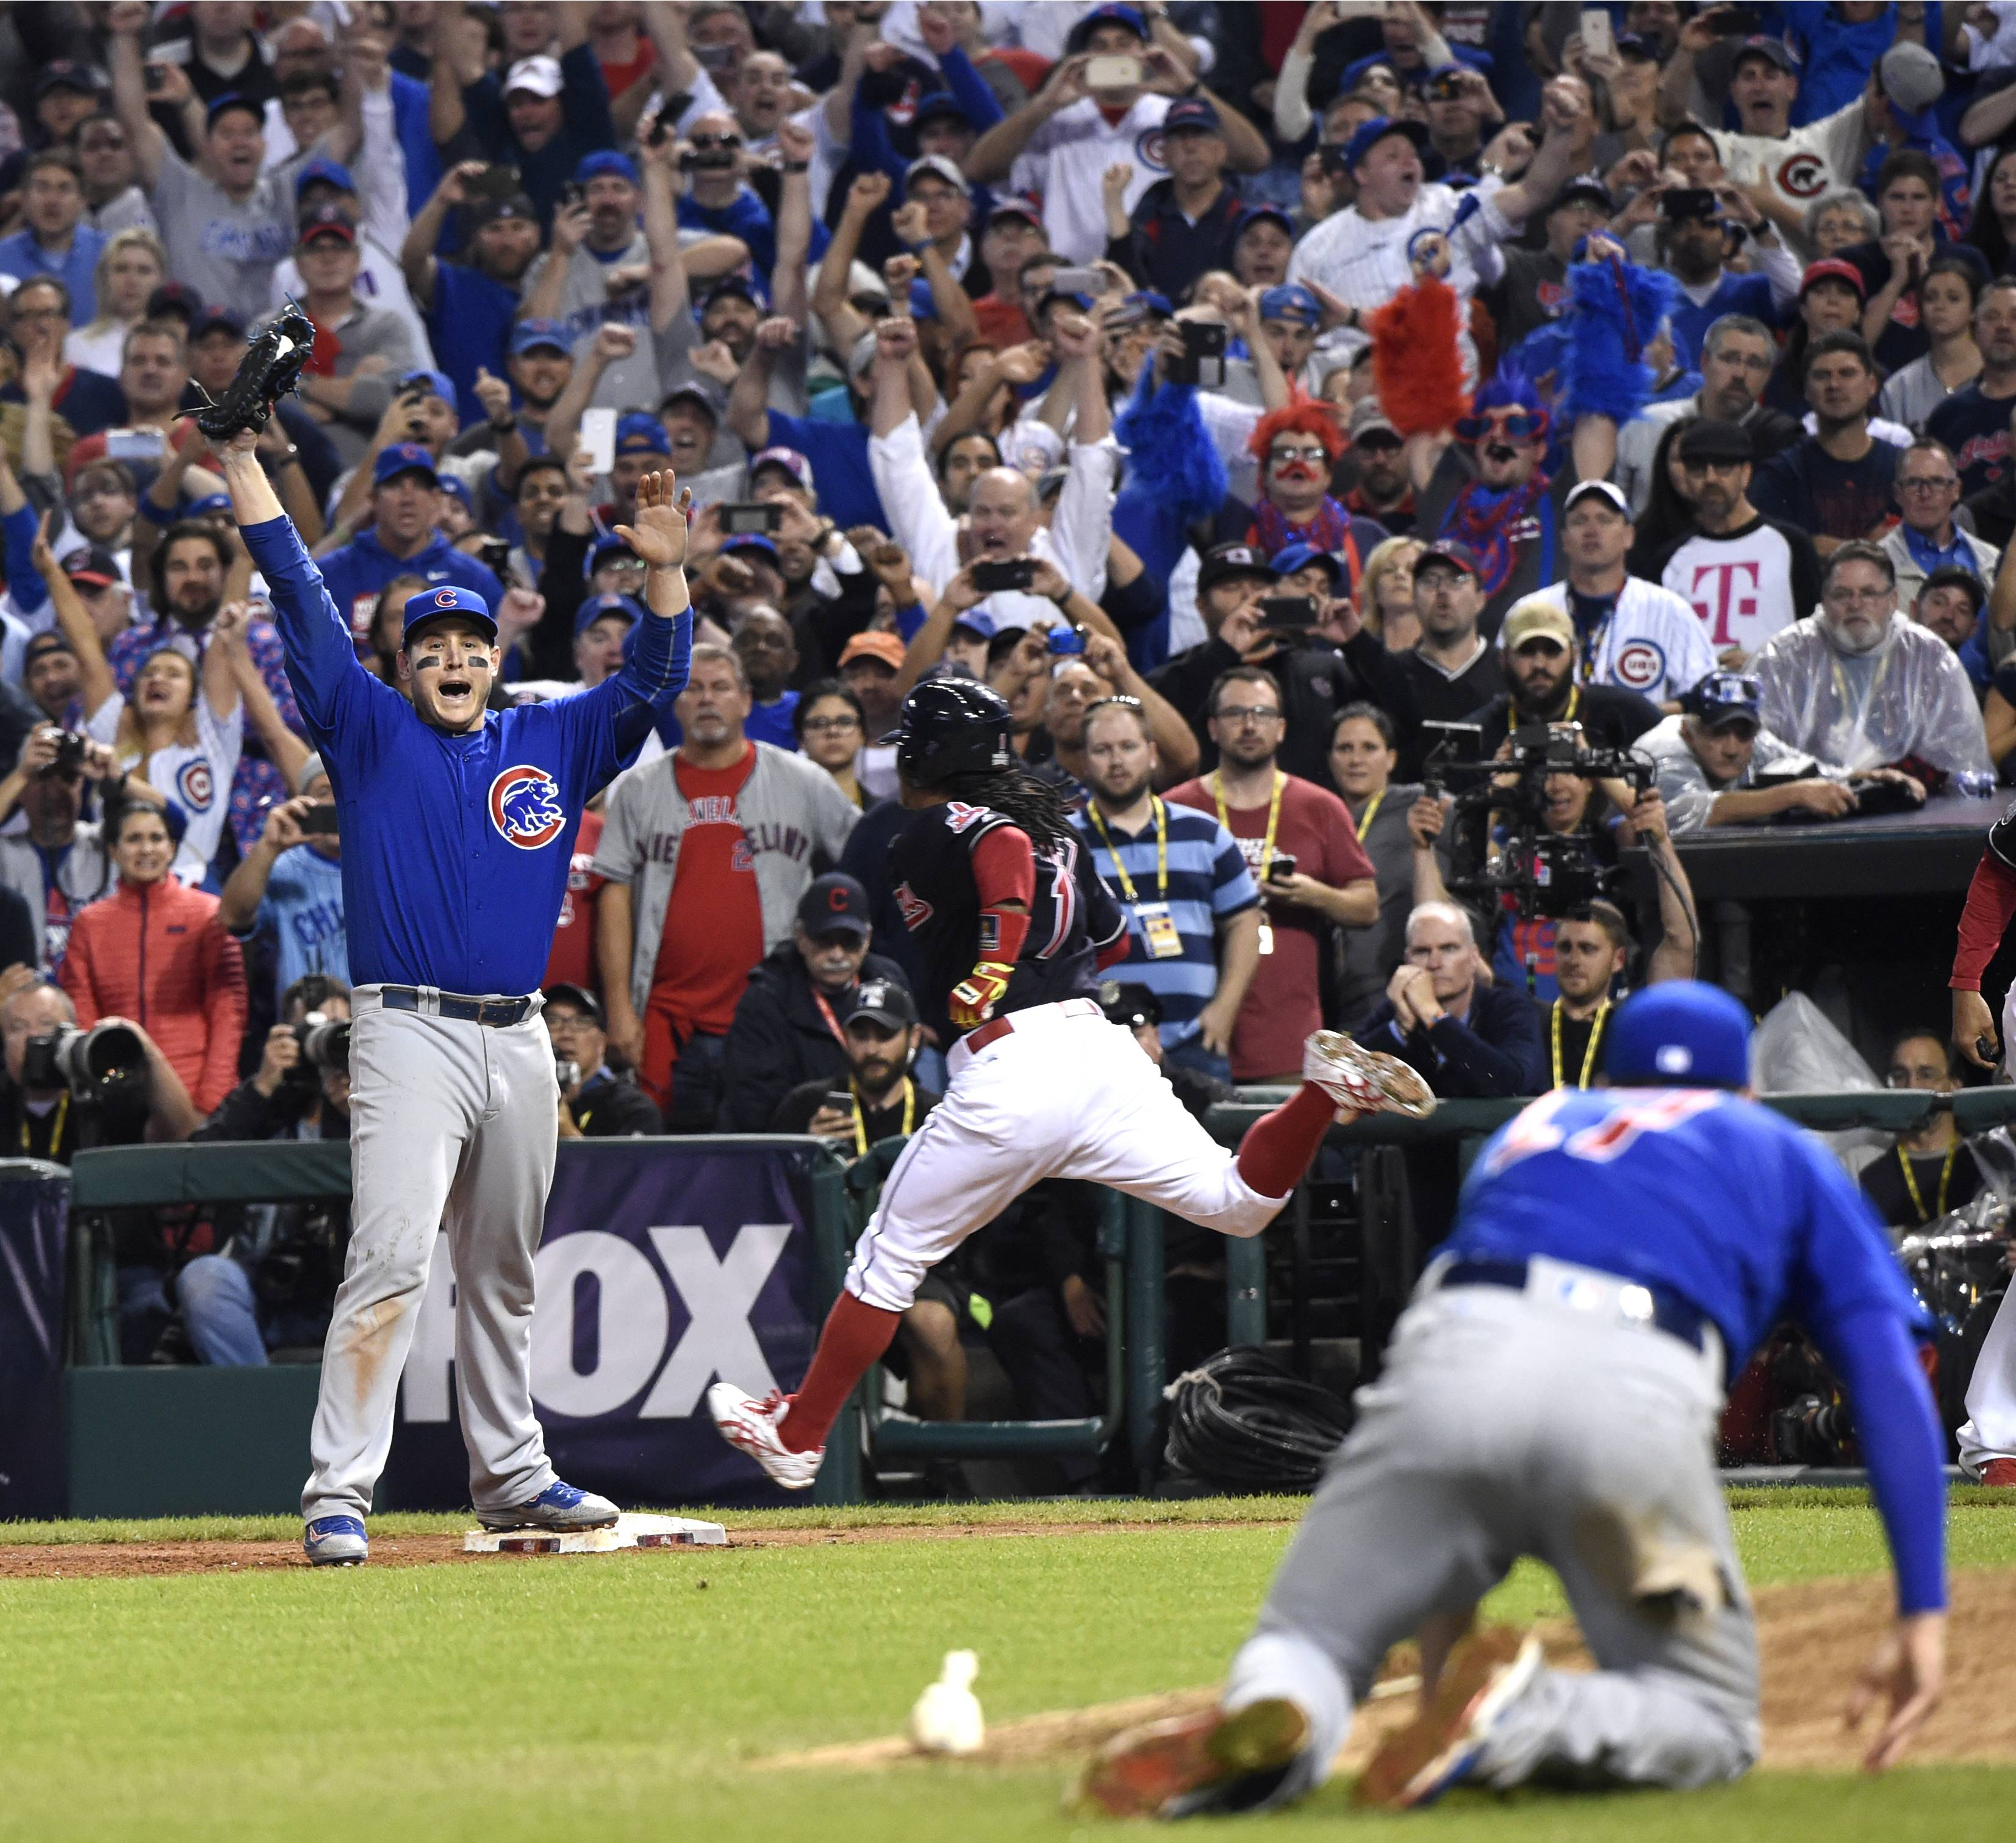 'Reign Men' documentary an impressive hit for Cubs fans